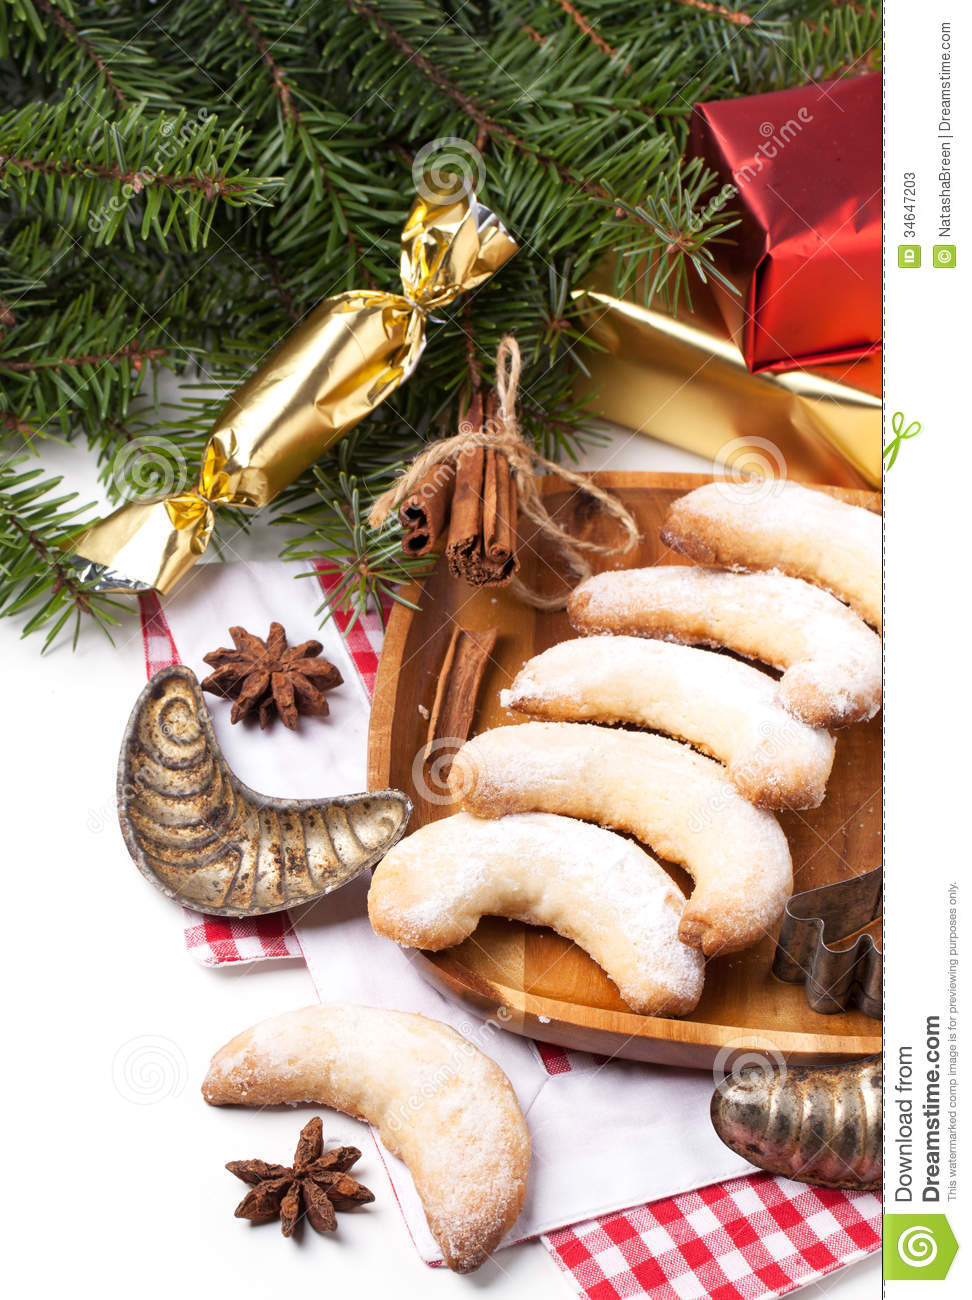 Christmas homemade cookies stock image Image of biscuit  34647203